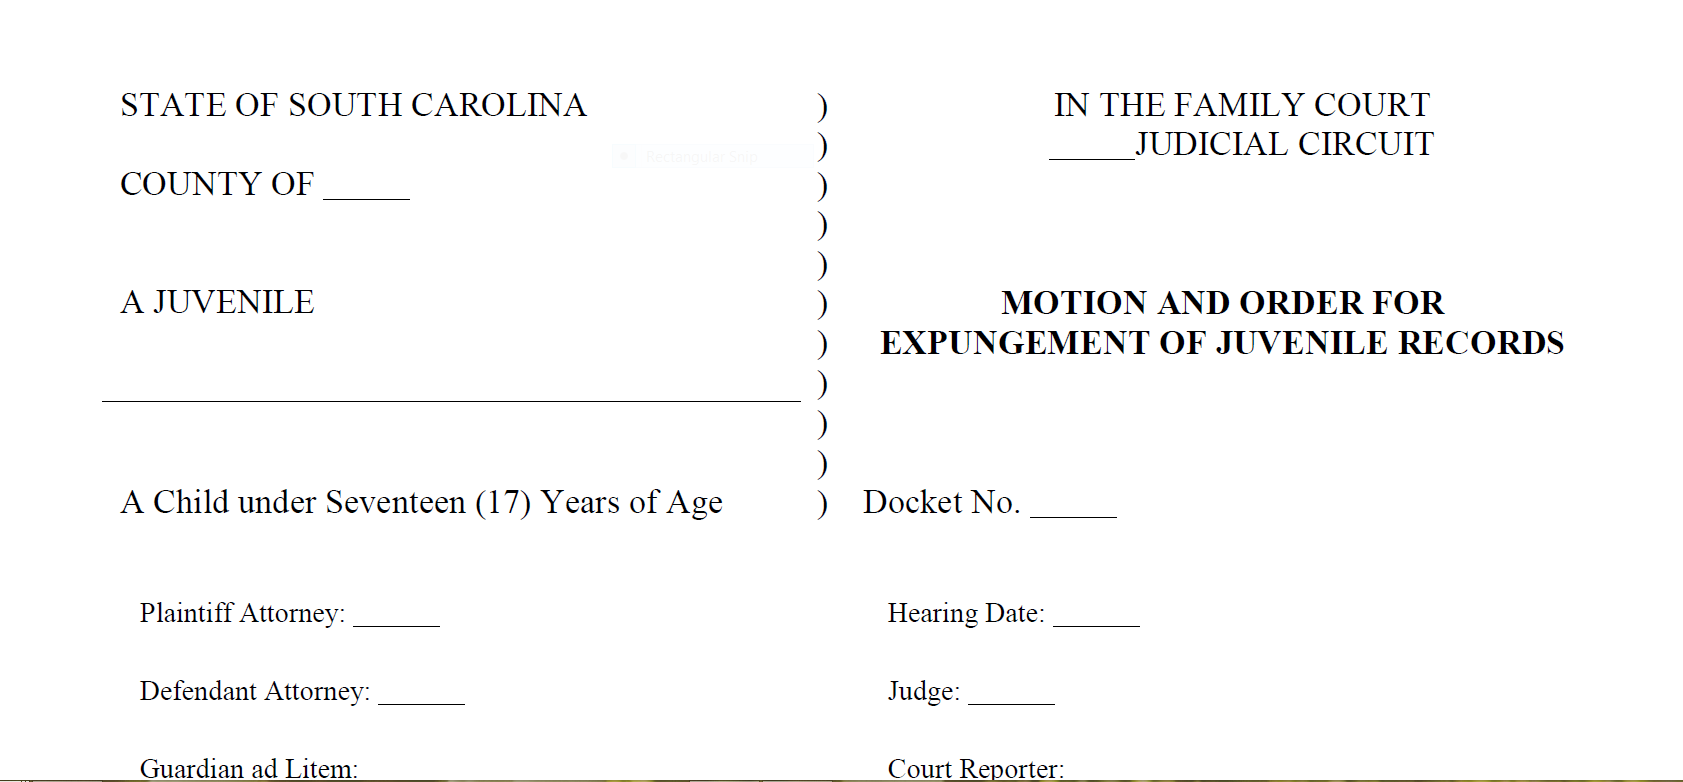 Revised South Carolina Juvenile Expungement Forms Available | The ...